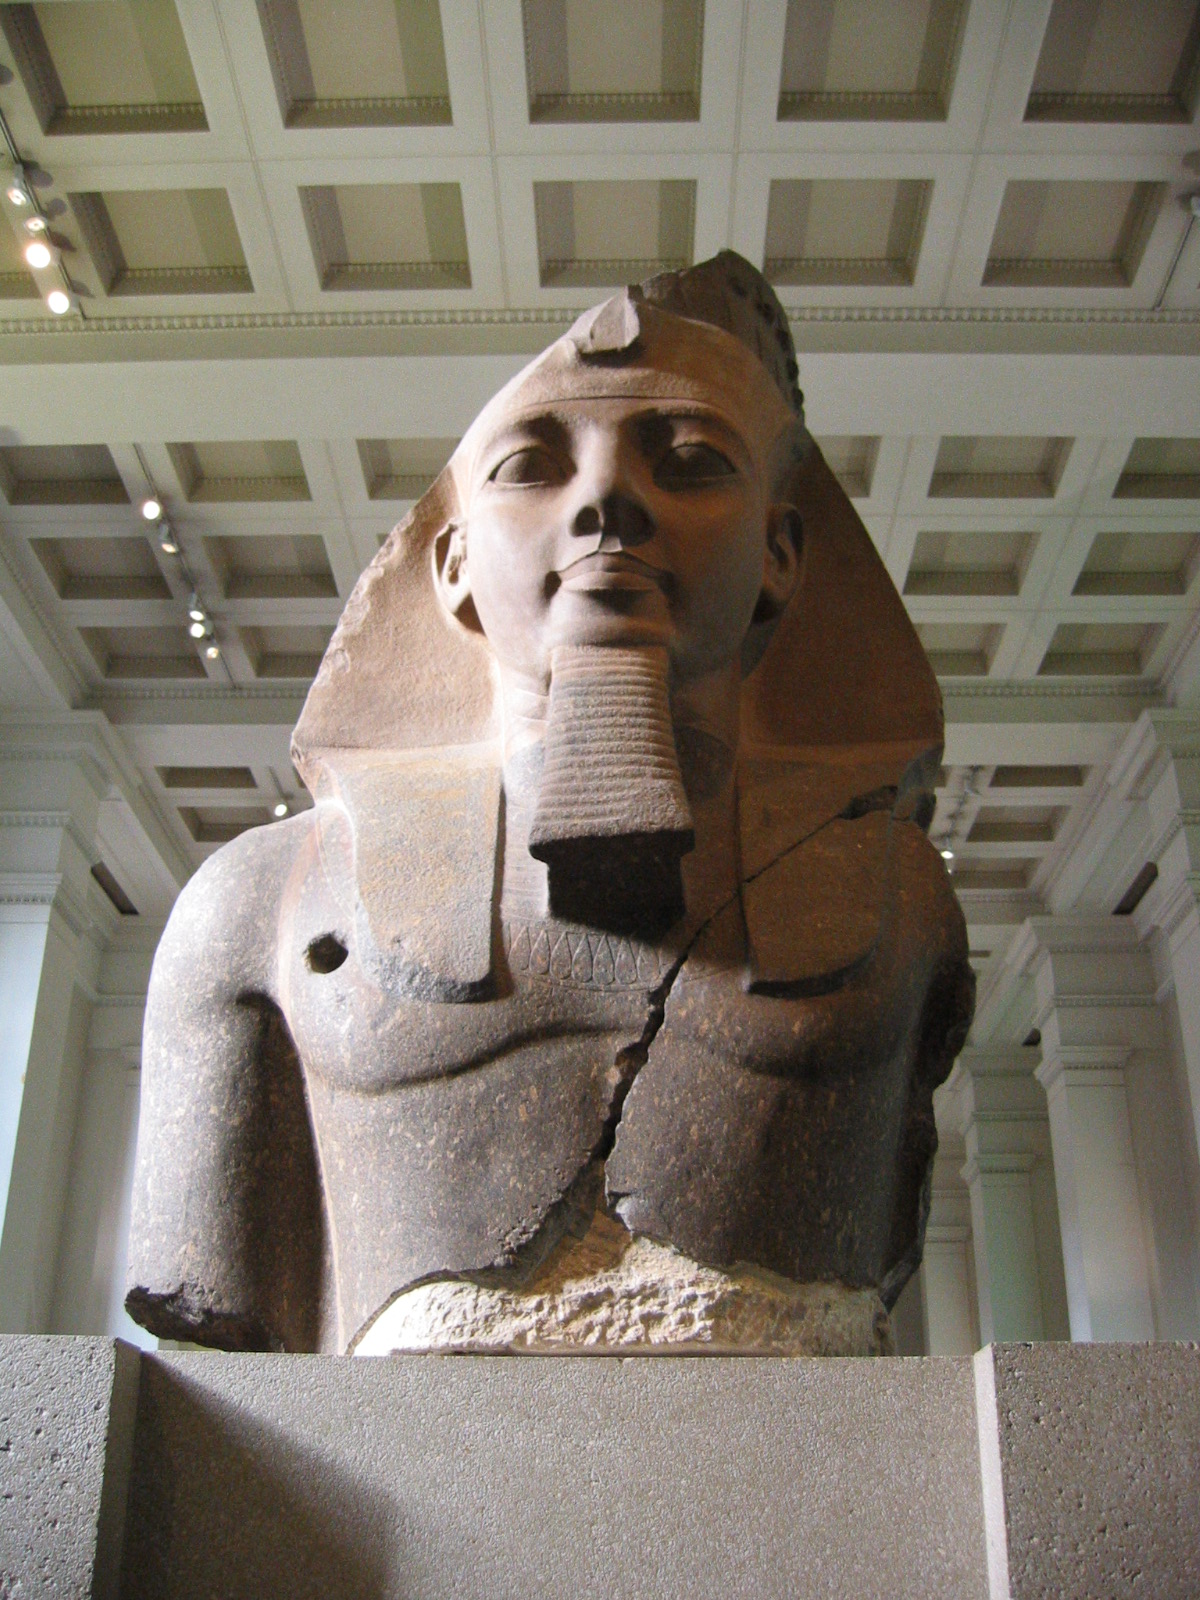 2013 books to the ceiling the younger memnon statue of ramesses ii in the british museum thought to